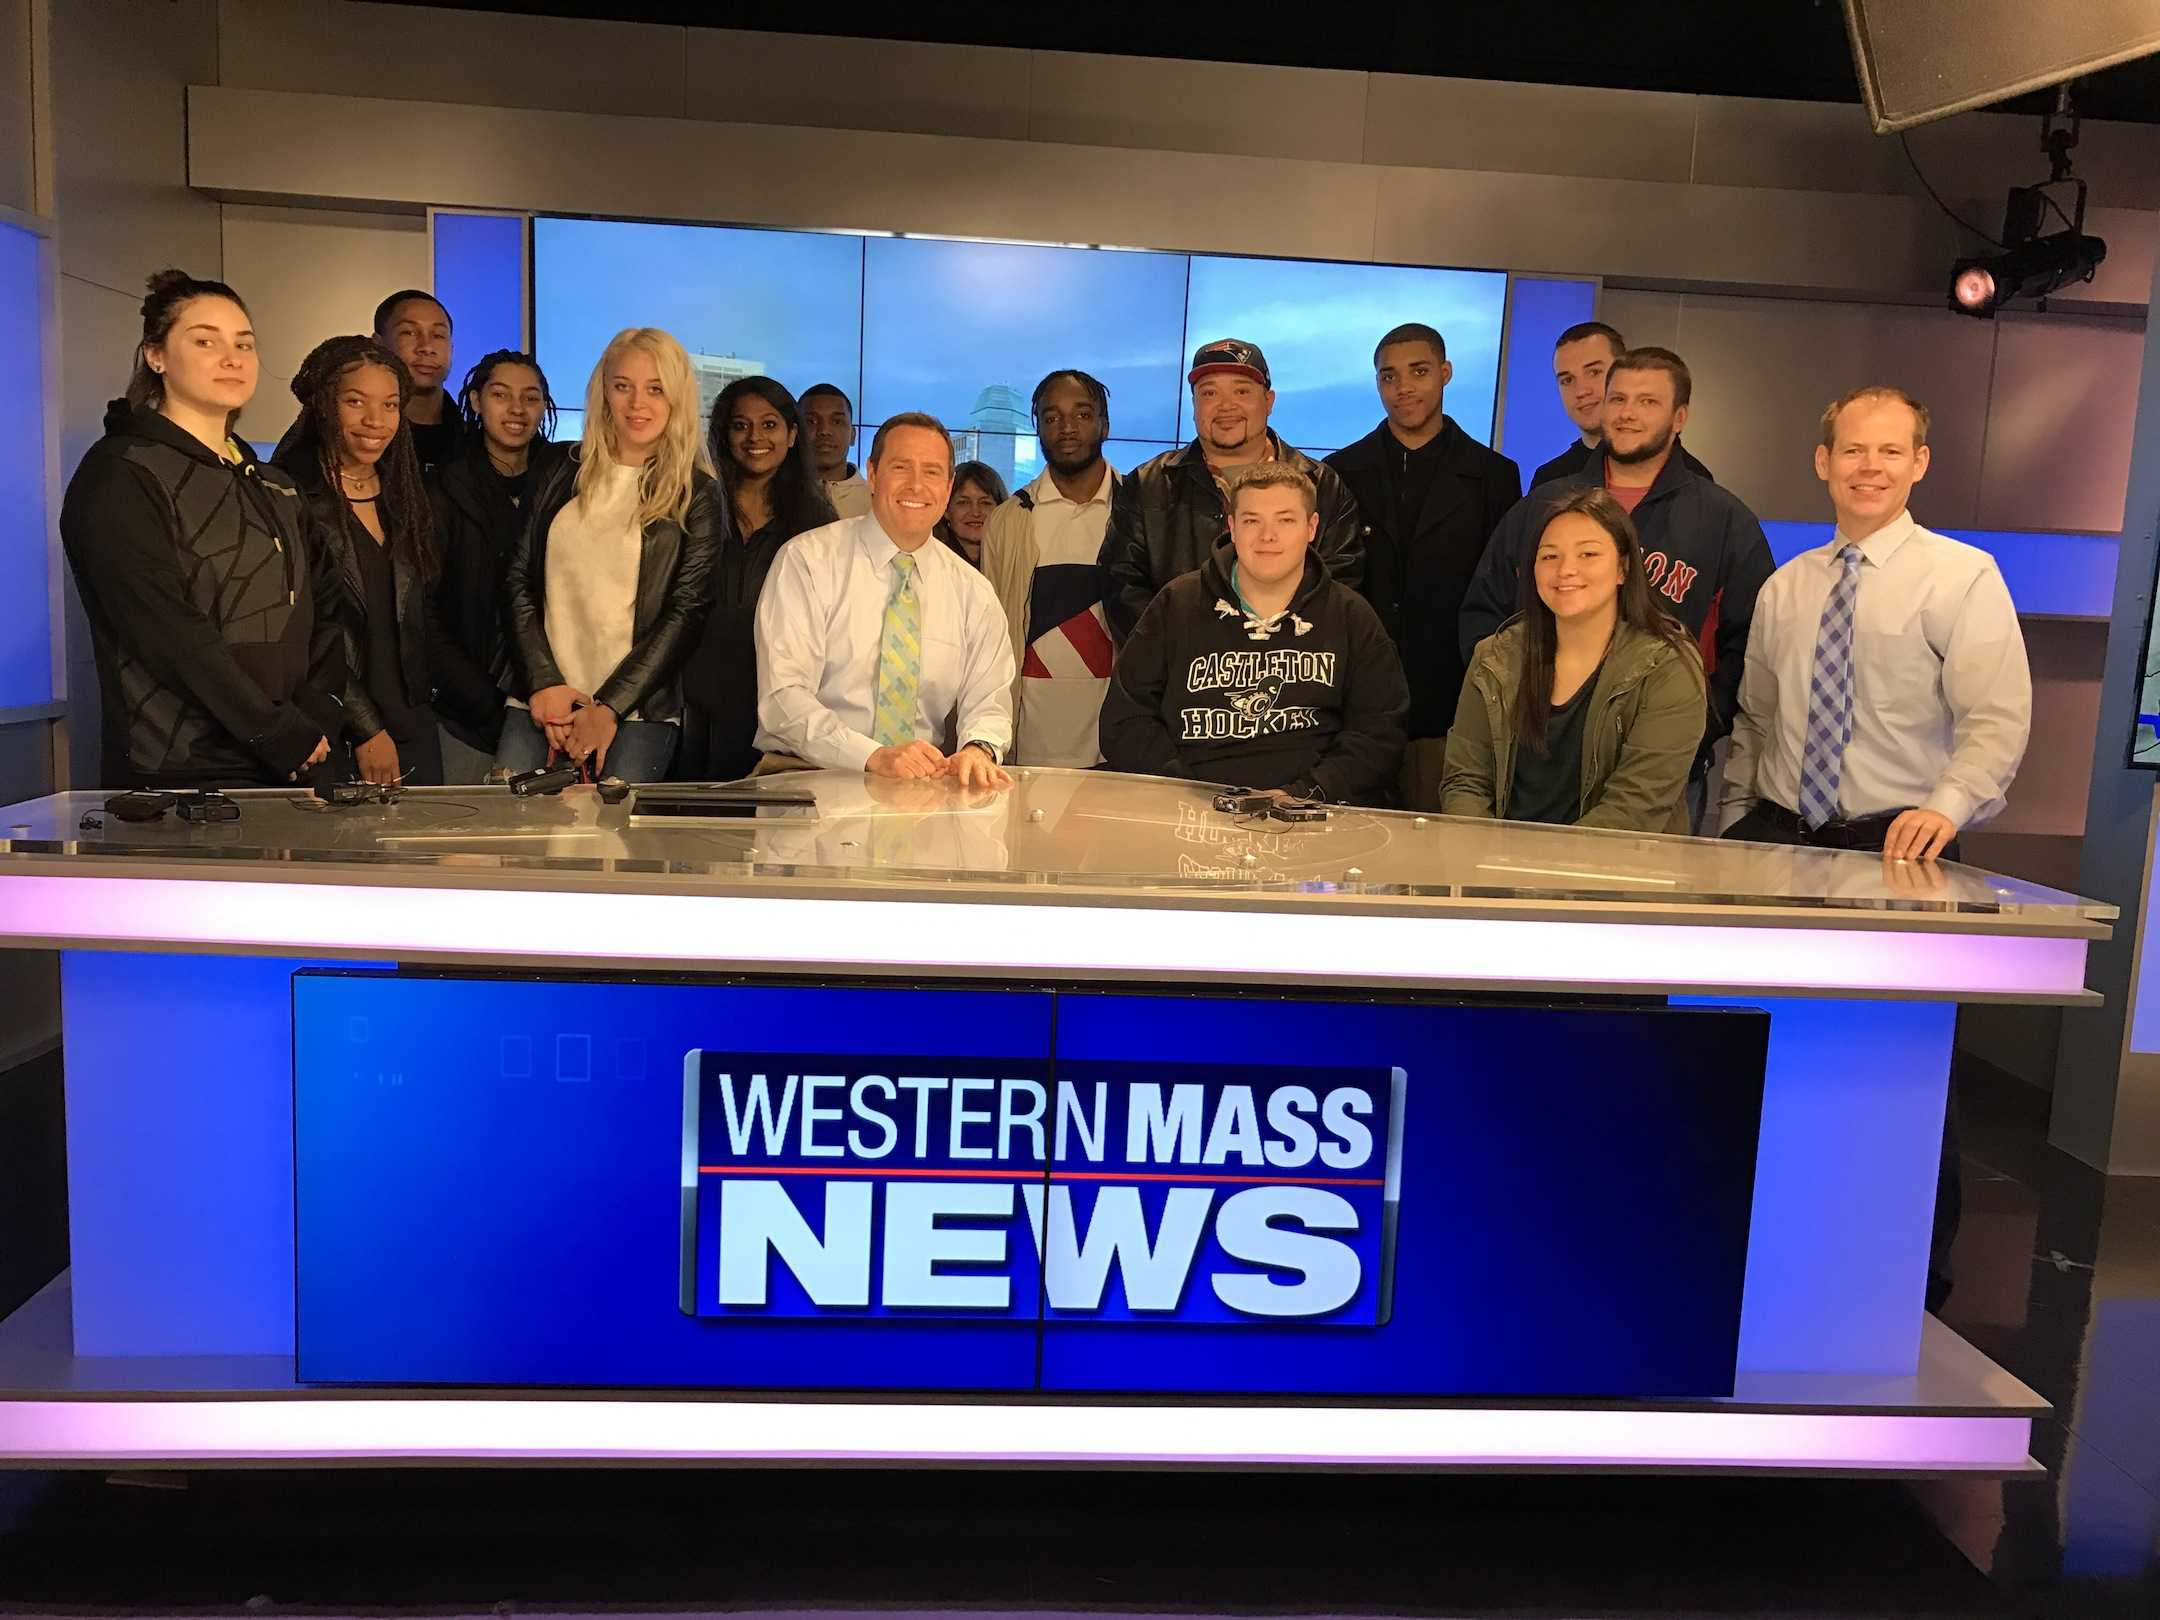 AIC's Intro to Broadcasting class with Western Mass anchor Chris Pisano (center) and meteorologist Dan Brown.